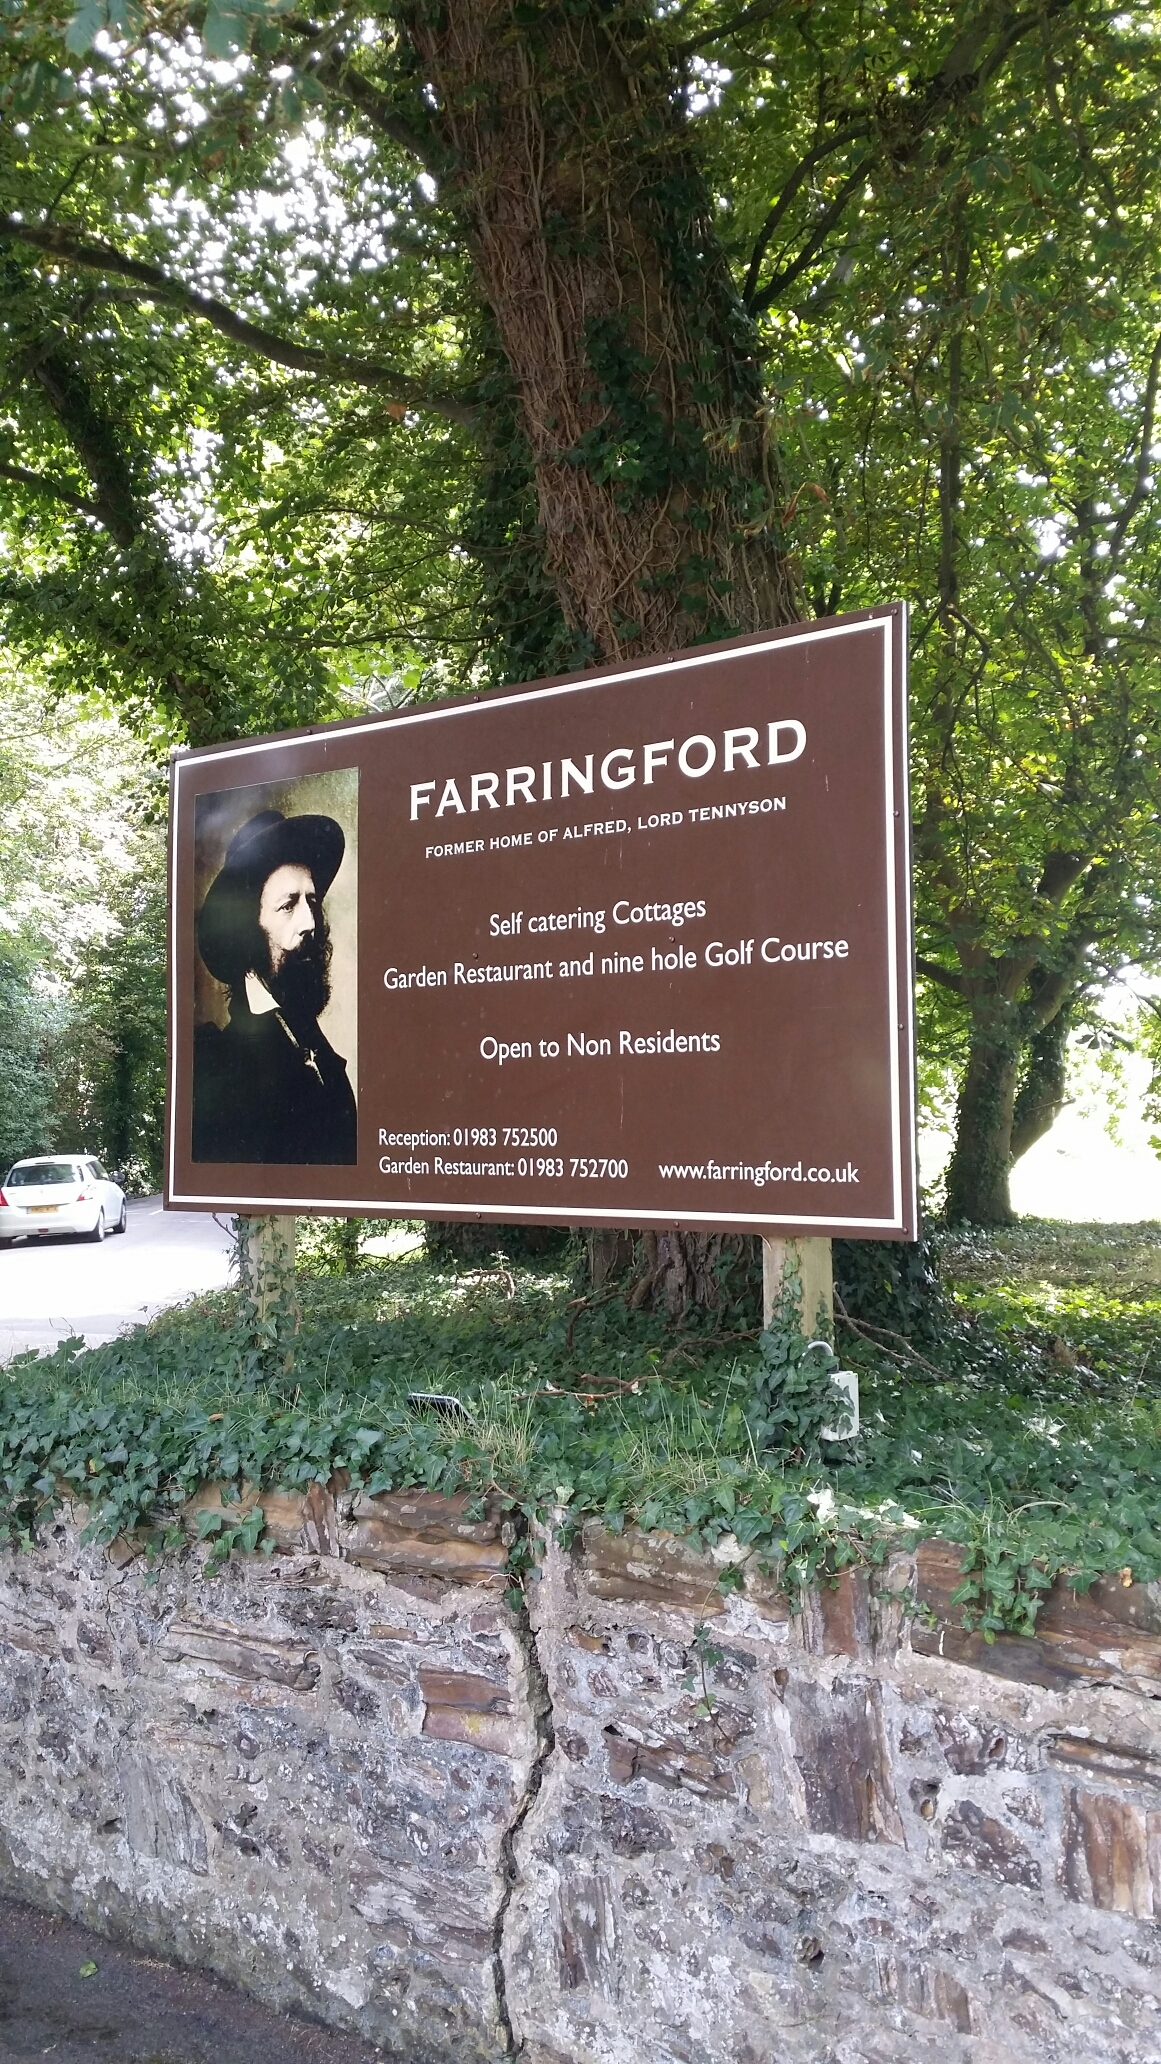 Farringford, home of Alfred Lord Tennyson